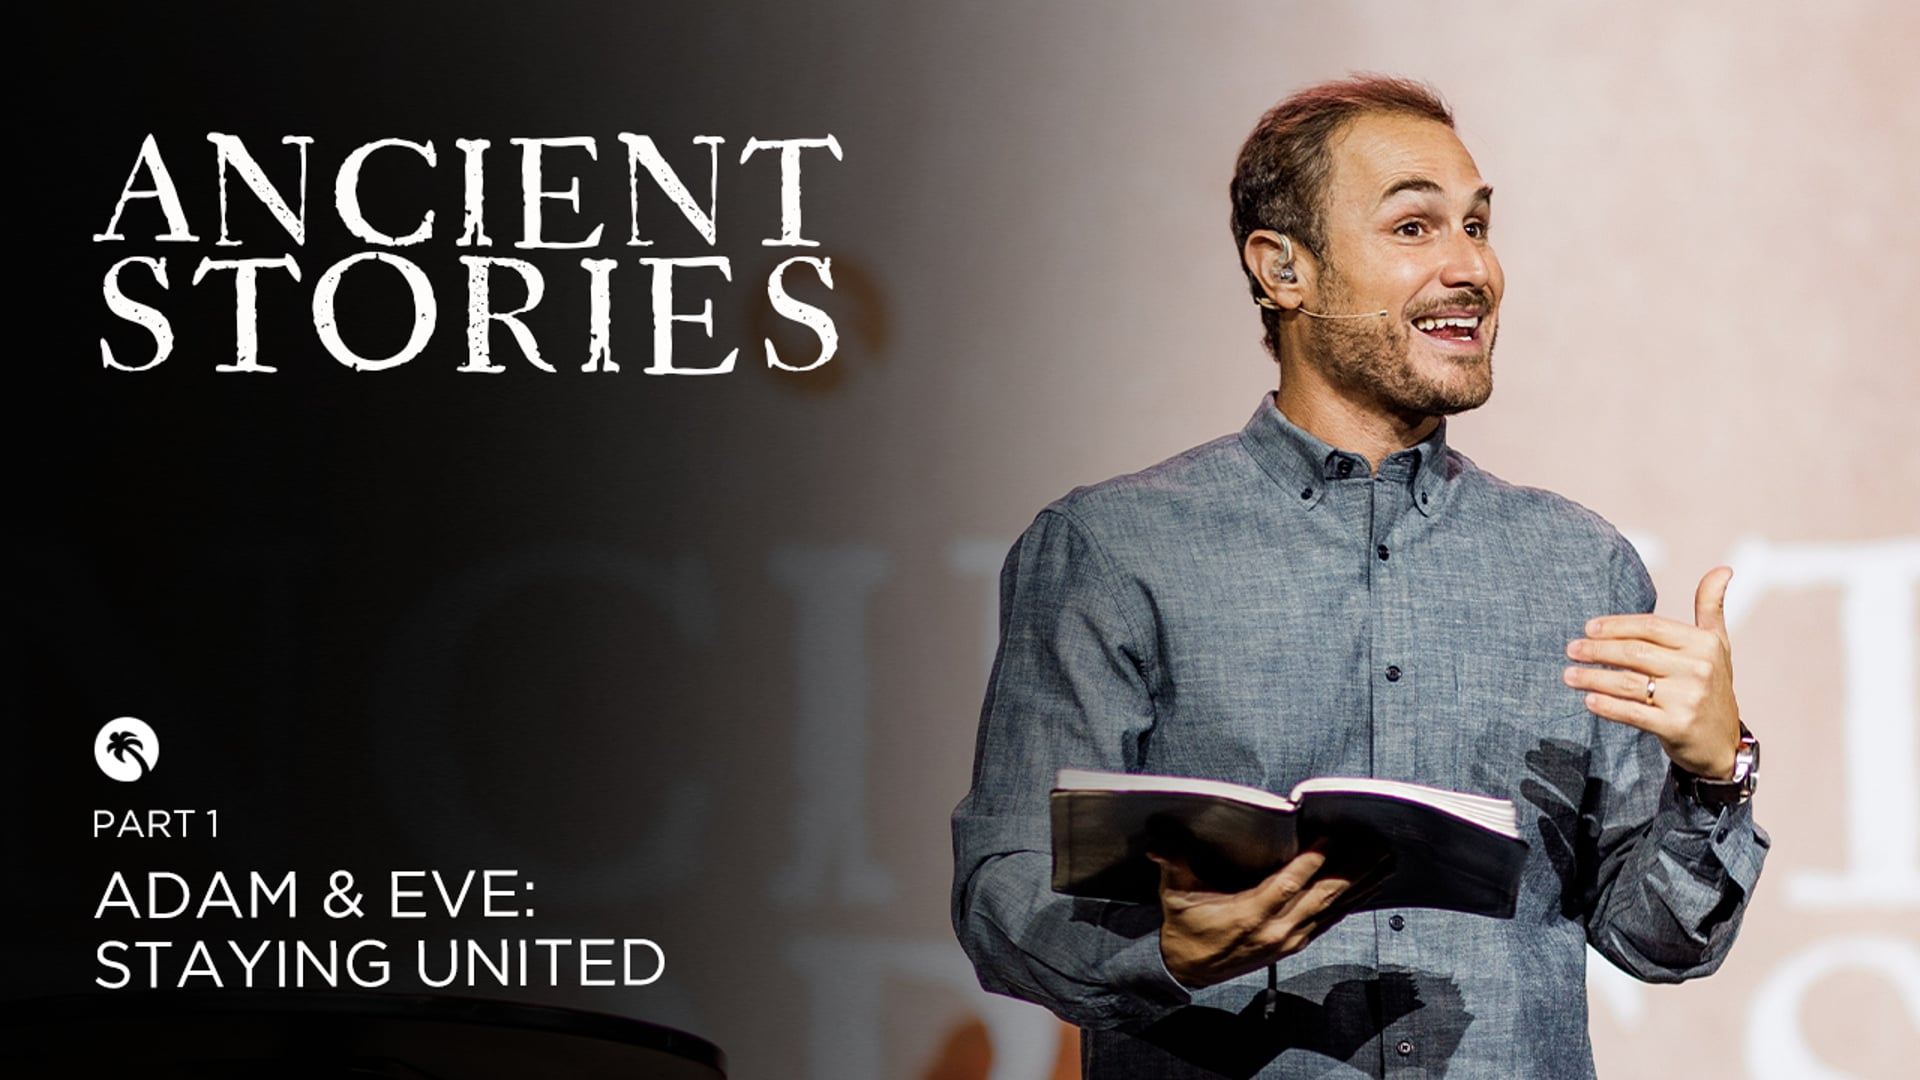 Ancient Stories Part 1 - Adam & Eve: Staying United